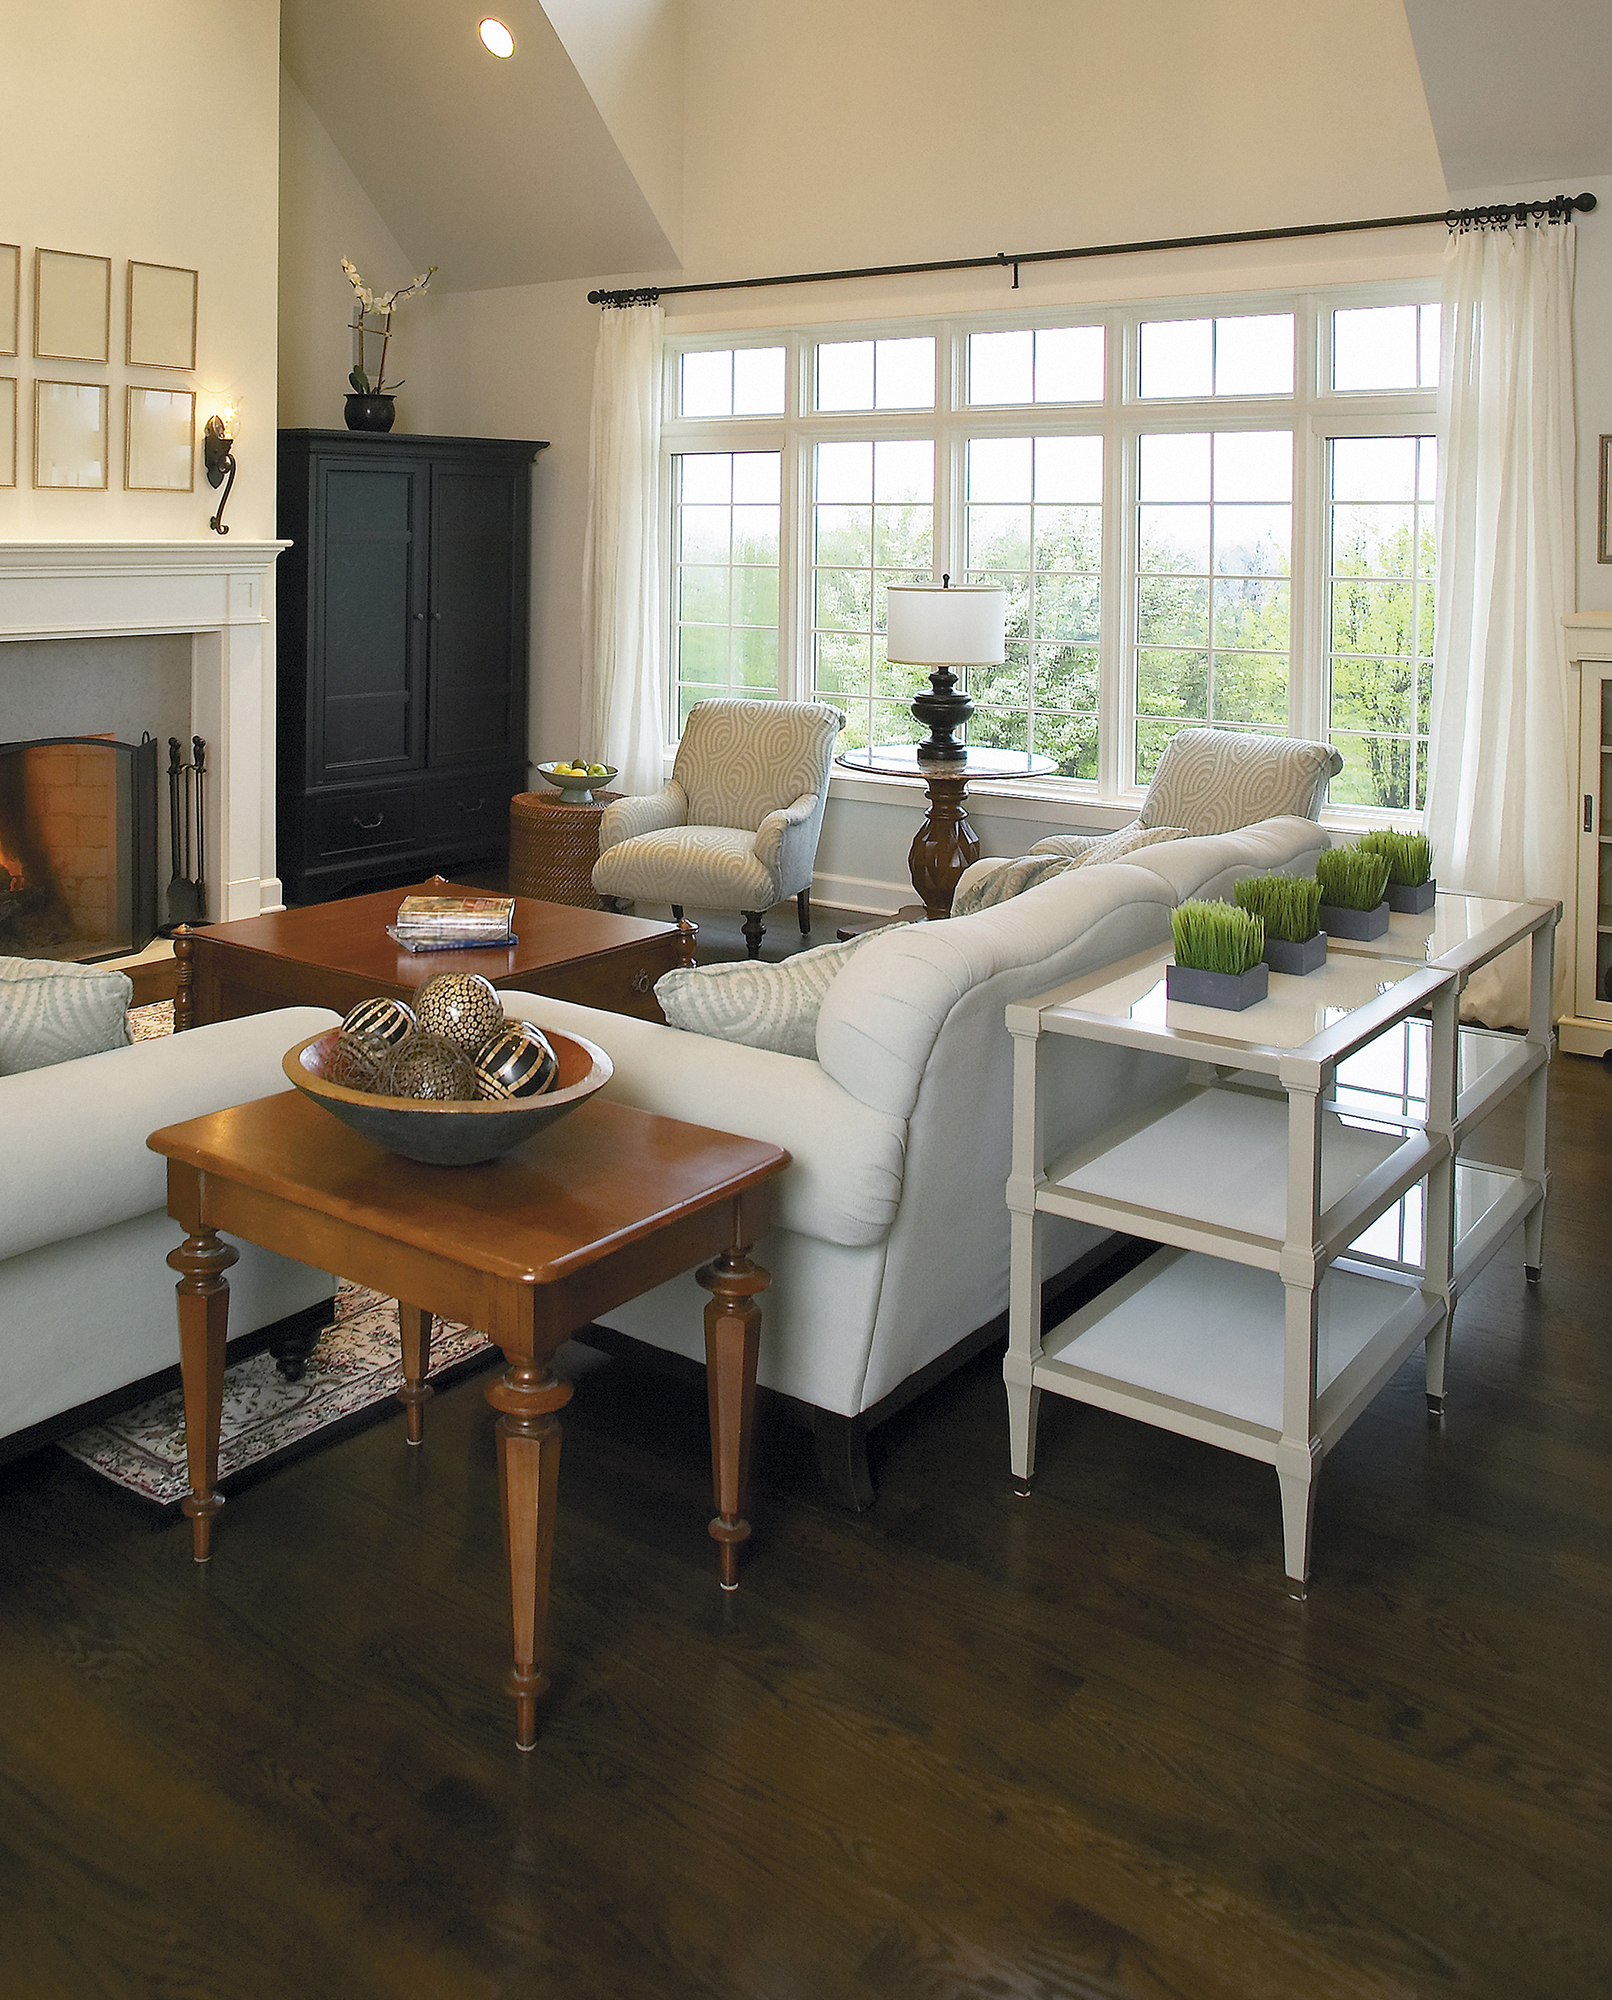 Living room with white accents and wood floors